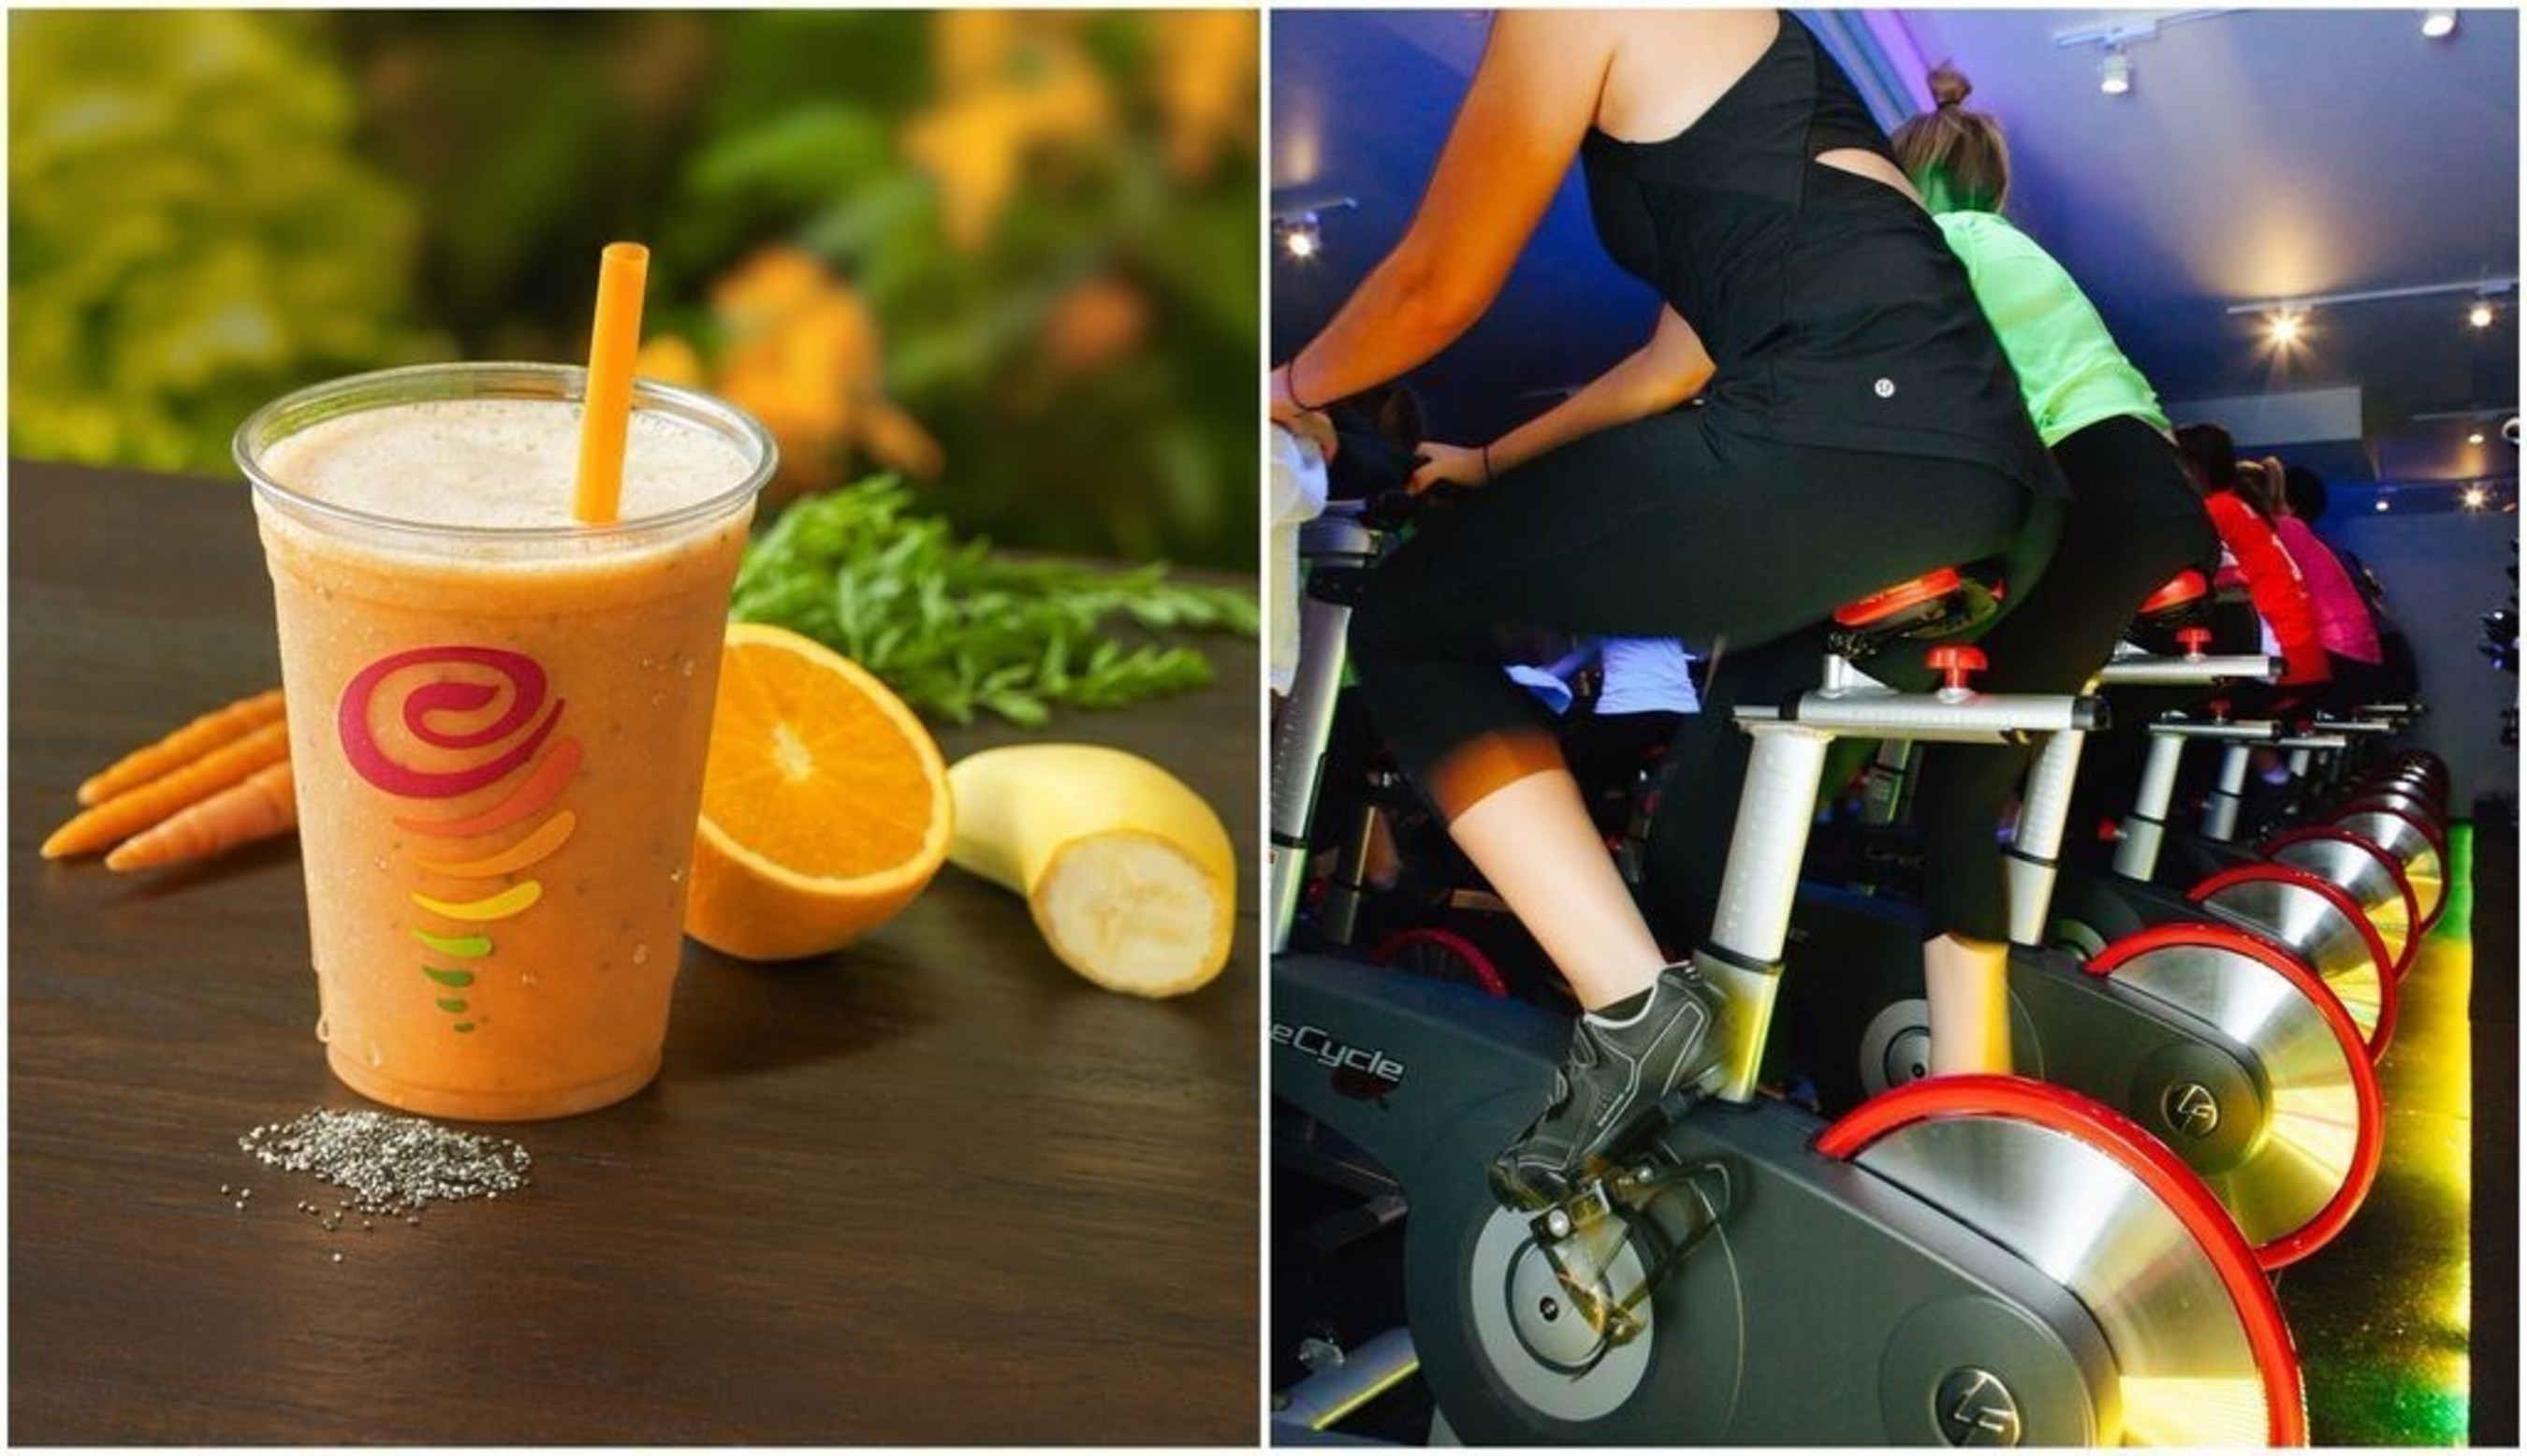 Jamba Juice's Orange Supreme(TM) & Cycling -- Orange Supreme(TM) is a delicious recovery beverage for a calorie torching endurance exercise like cycling, as it contains more than the daily requirement for Vitamin A and C - two nutrients cyclists need more of to get a bigger recovery benefit. Vitamin C also helps the body make collagen, which is a protein needed for healthy cartilage, tendons, and ligaments.